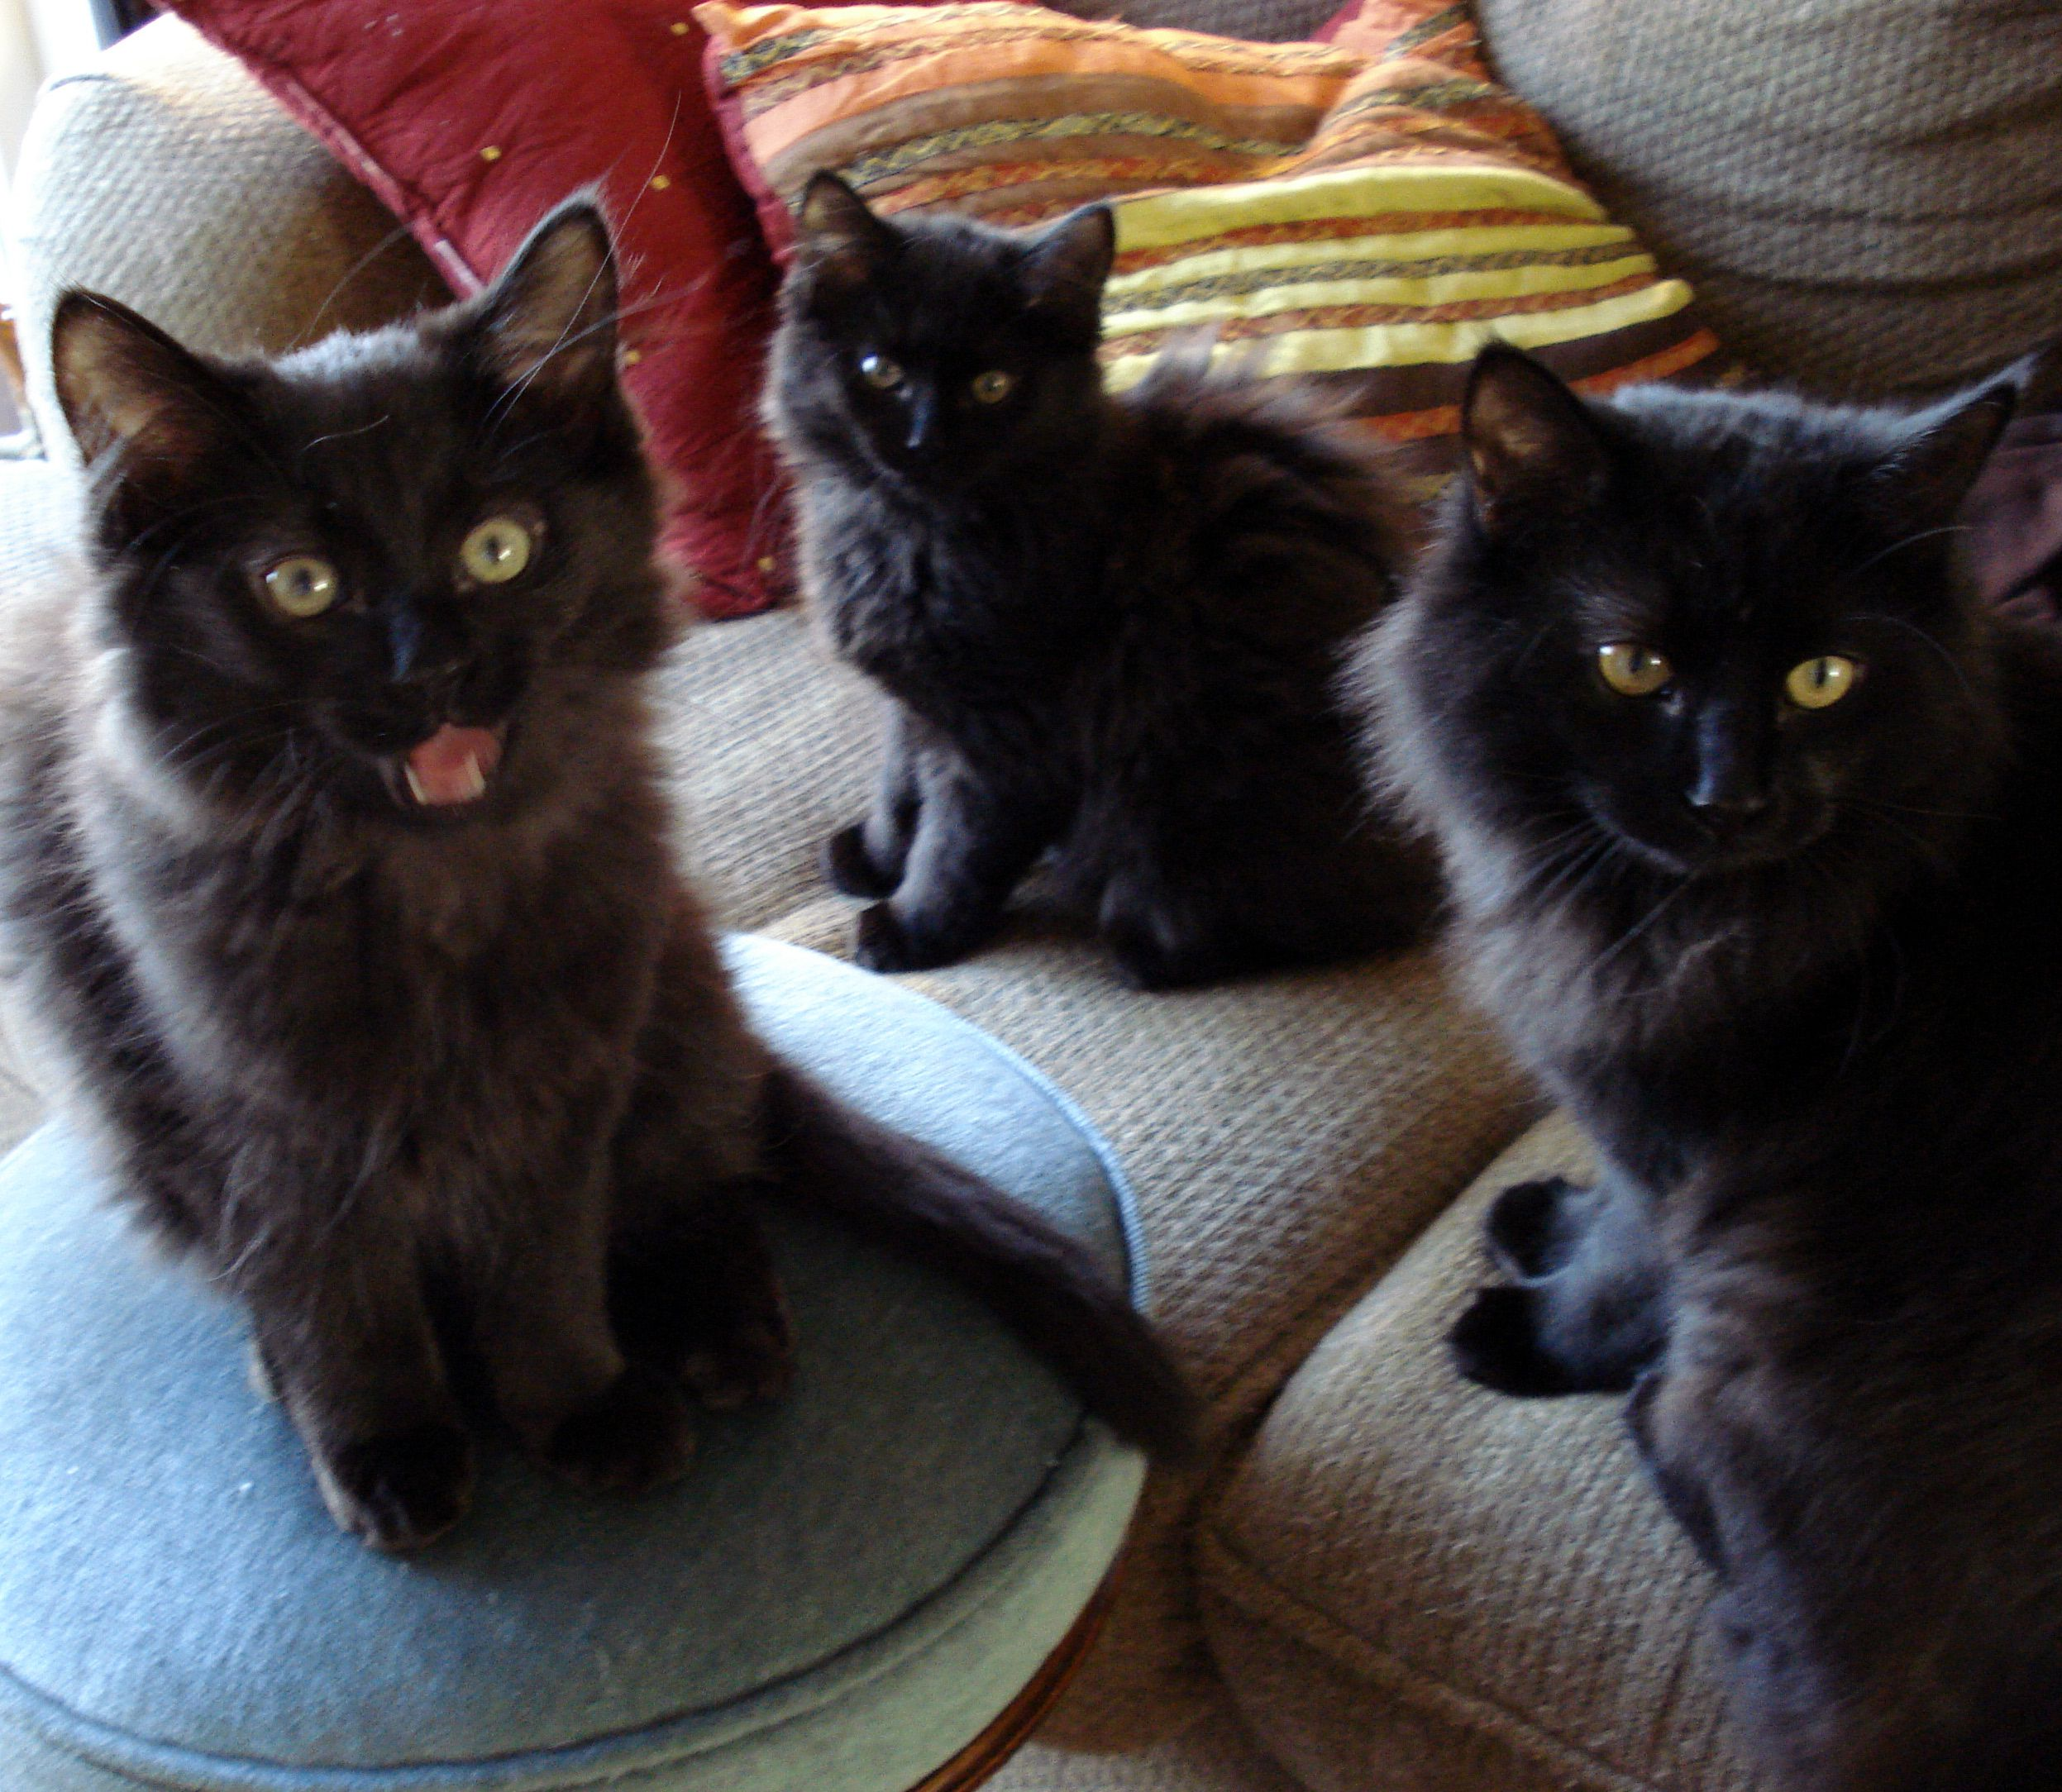 3 Of My Troublemakers Buster Petey And Laila Looks Like Buster Is Saying Hey Mom Why Are You Posting Our Pics On Pint Puppies And Kitties Black Cat Cats